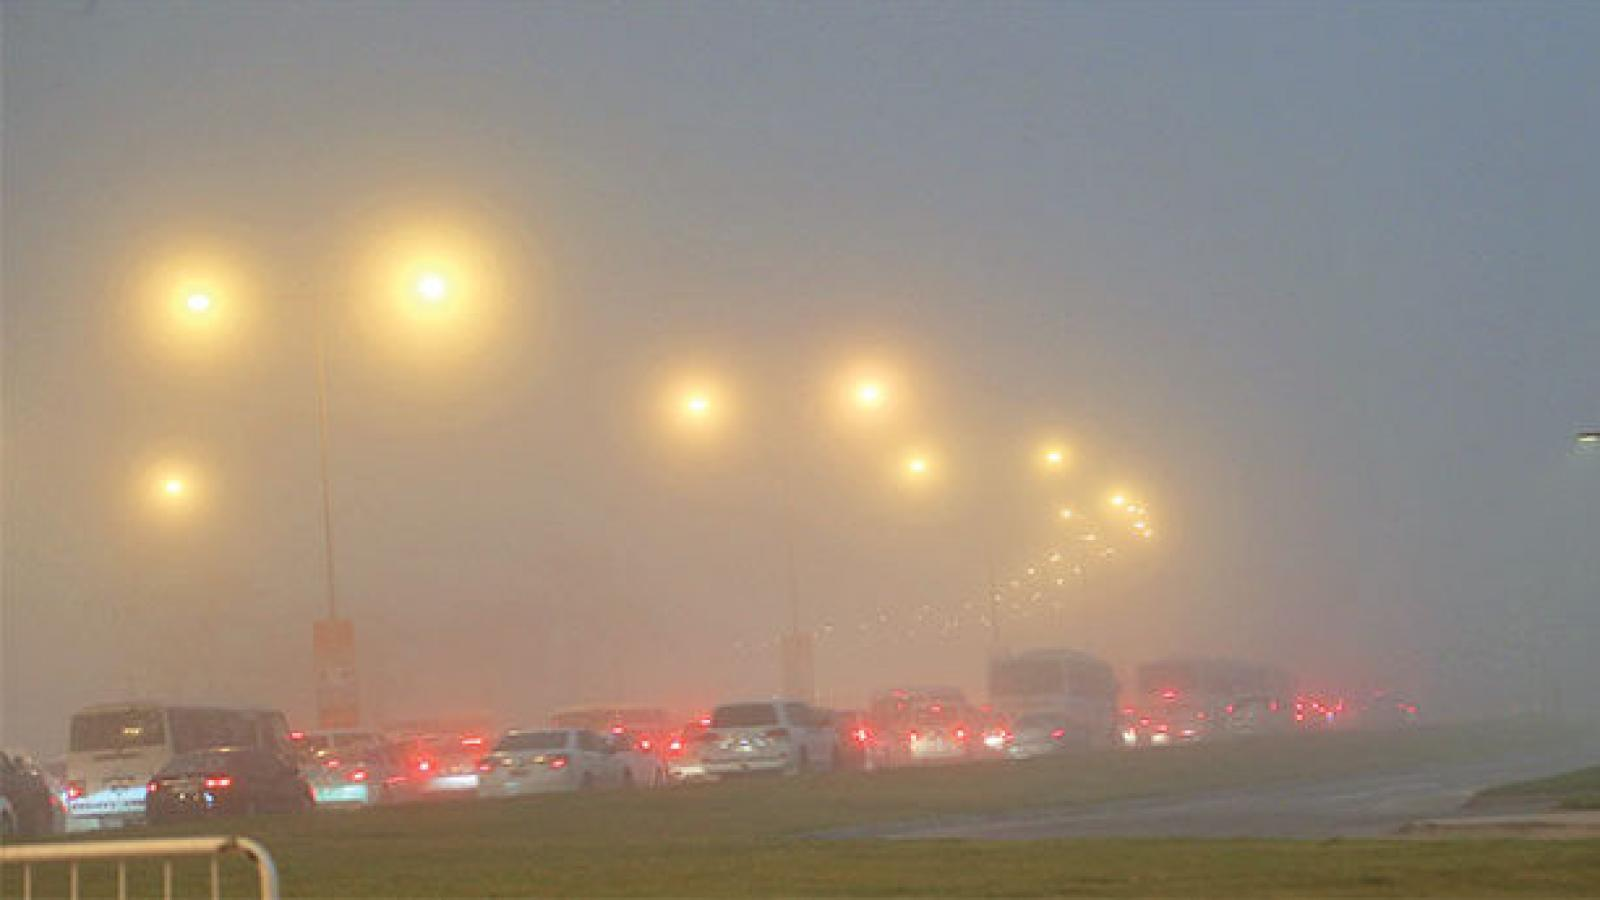 Take care as dust storm hits several parts of Qatar